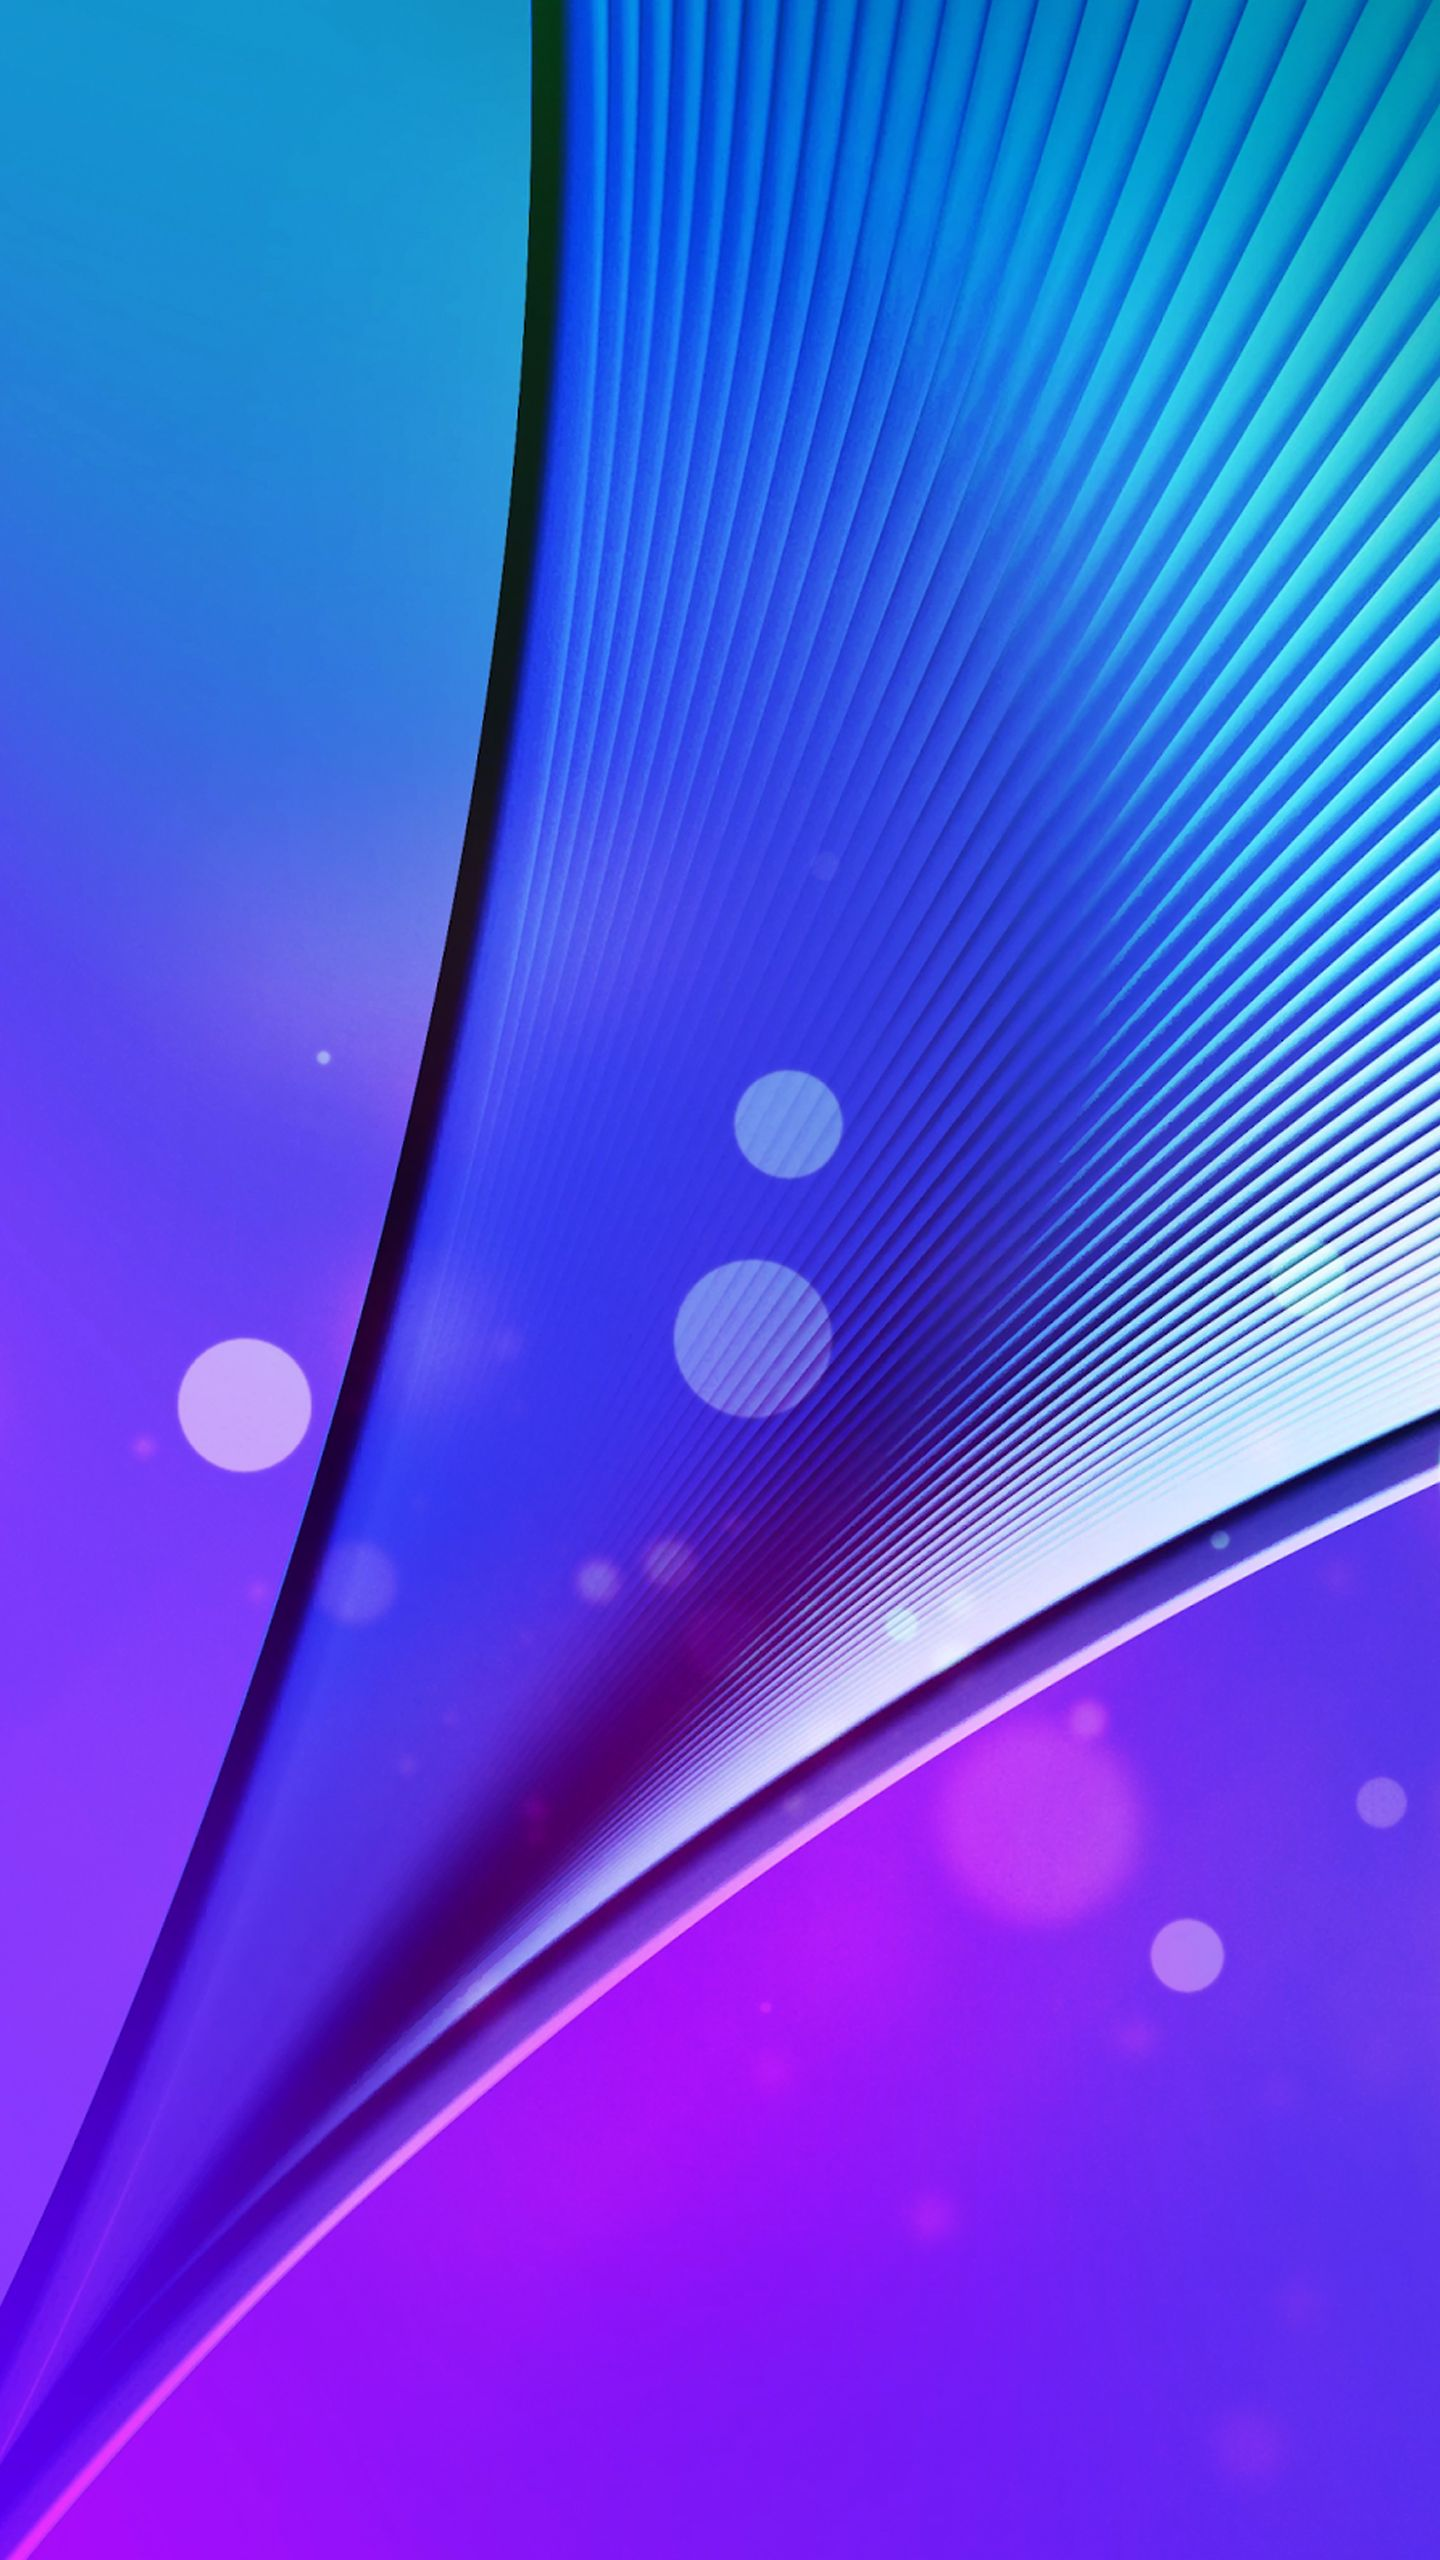 Abstract Light Wallpaper For Samsung Galaxy S7 Edge Hd Wallpapers Wallpapers Download High Resolution Wallpapers Samsung Galaxy Wallpaper Samsung Galaxy S8 Wallpapers Phone Wallpaper Design